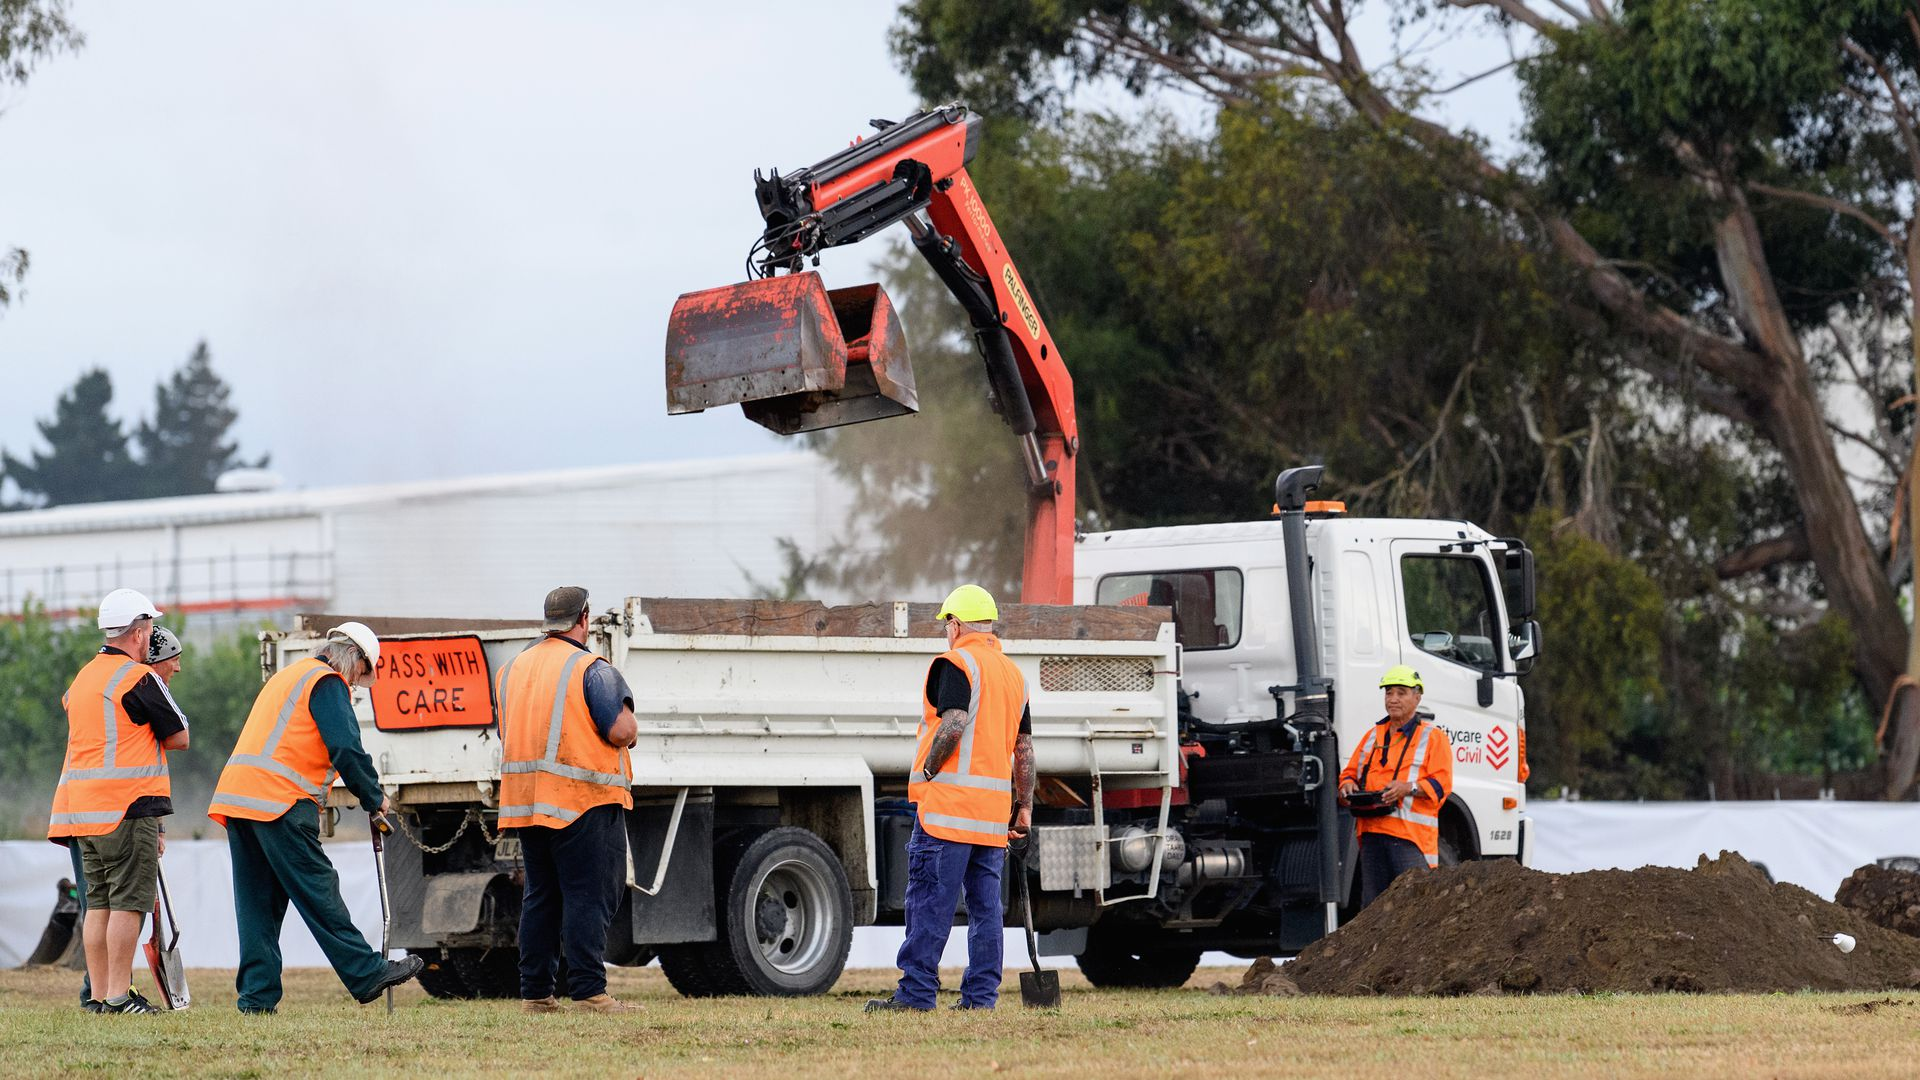 Workers begin digging graves for the victims of the New Zealand mosque attacks.